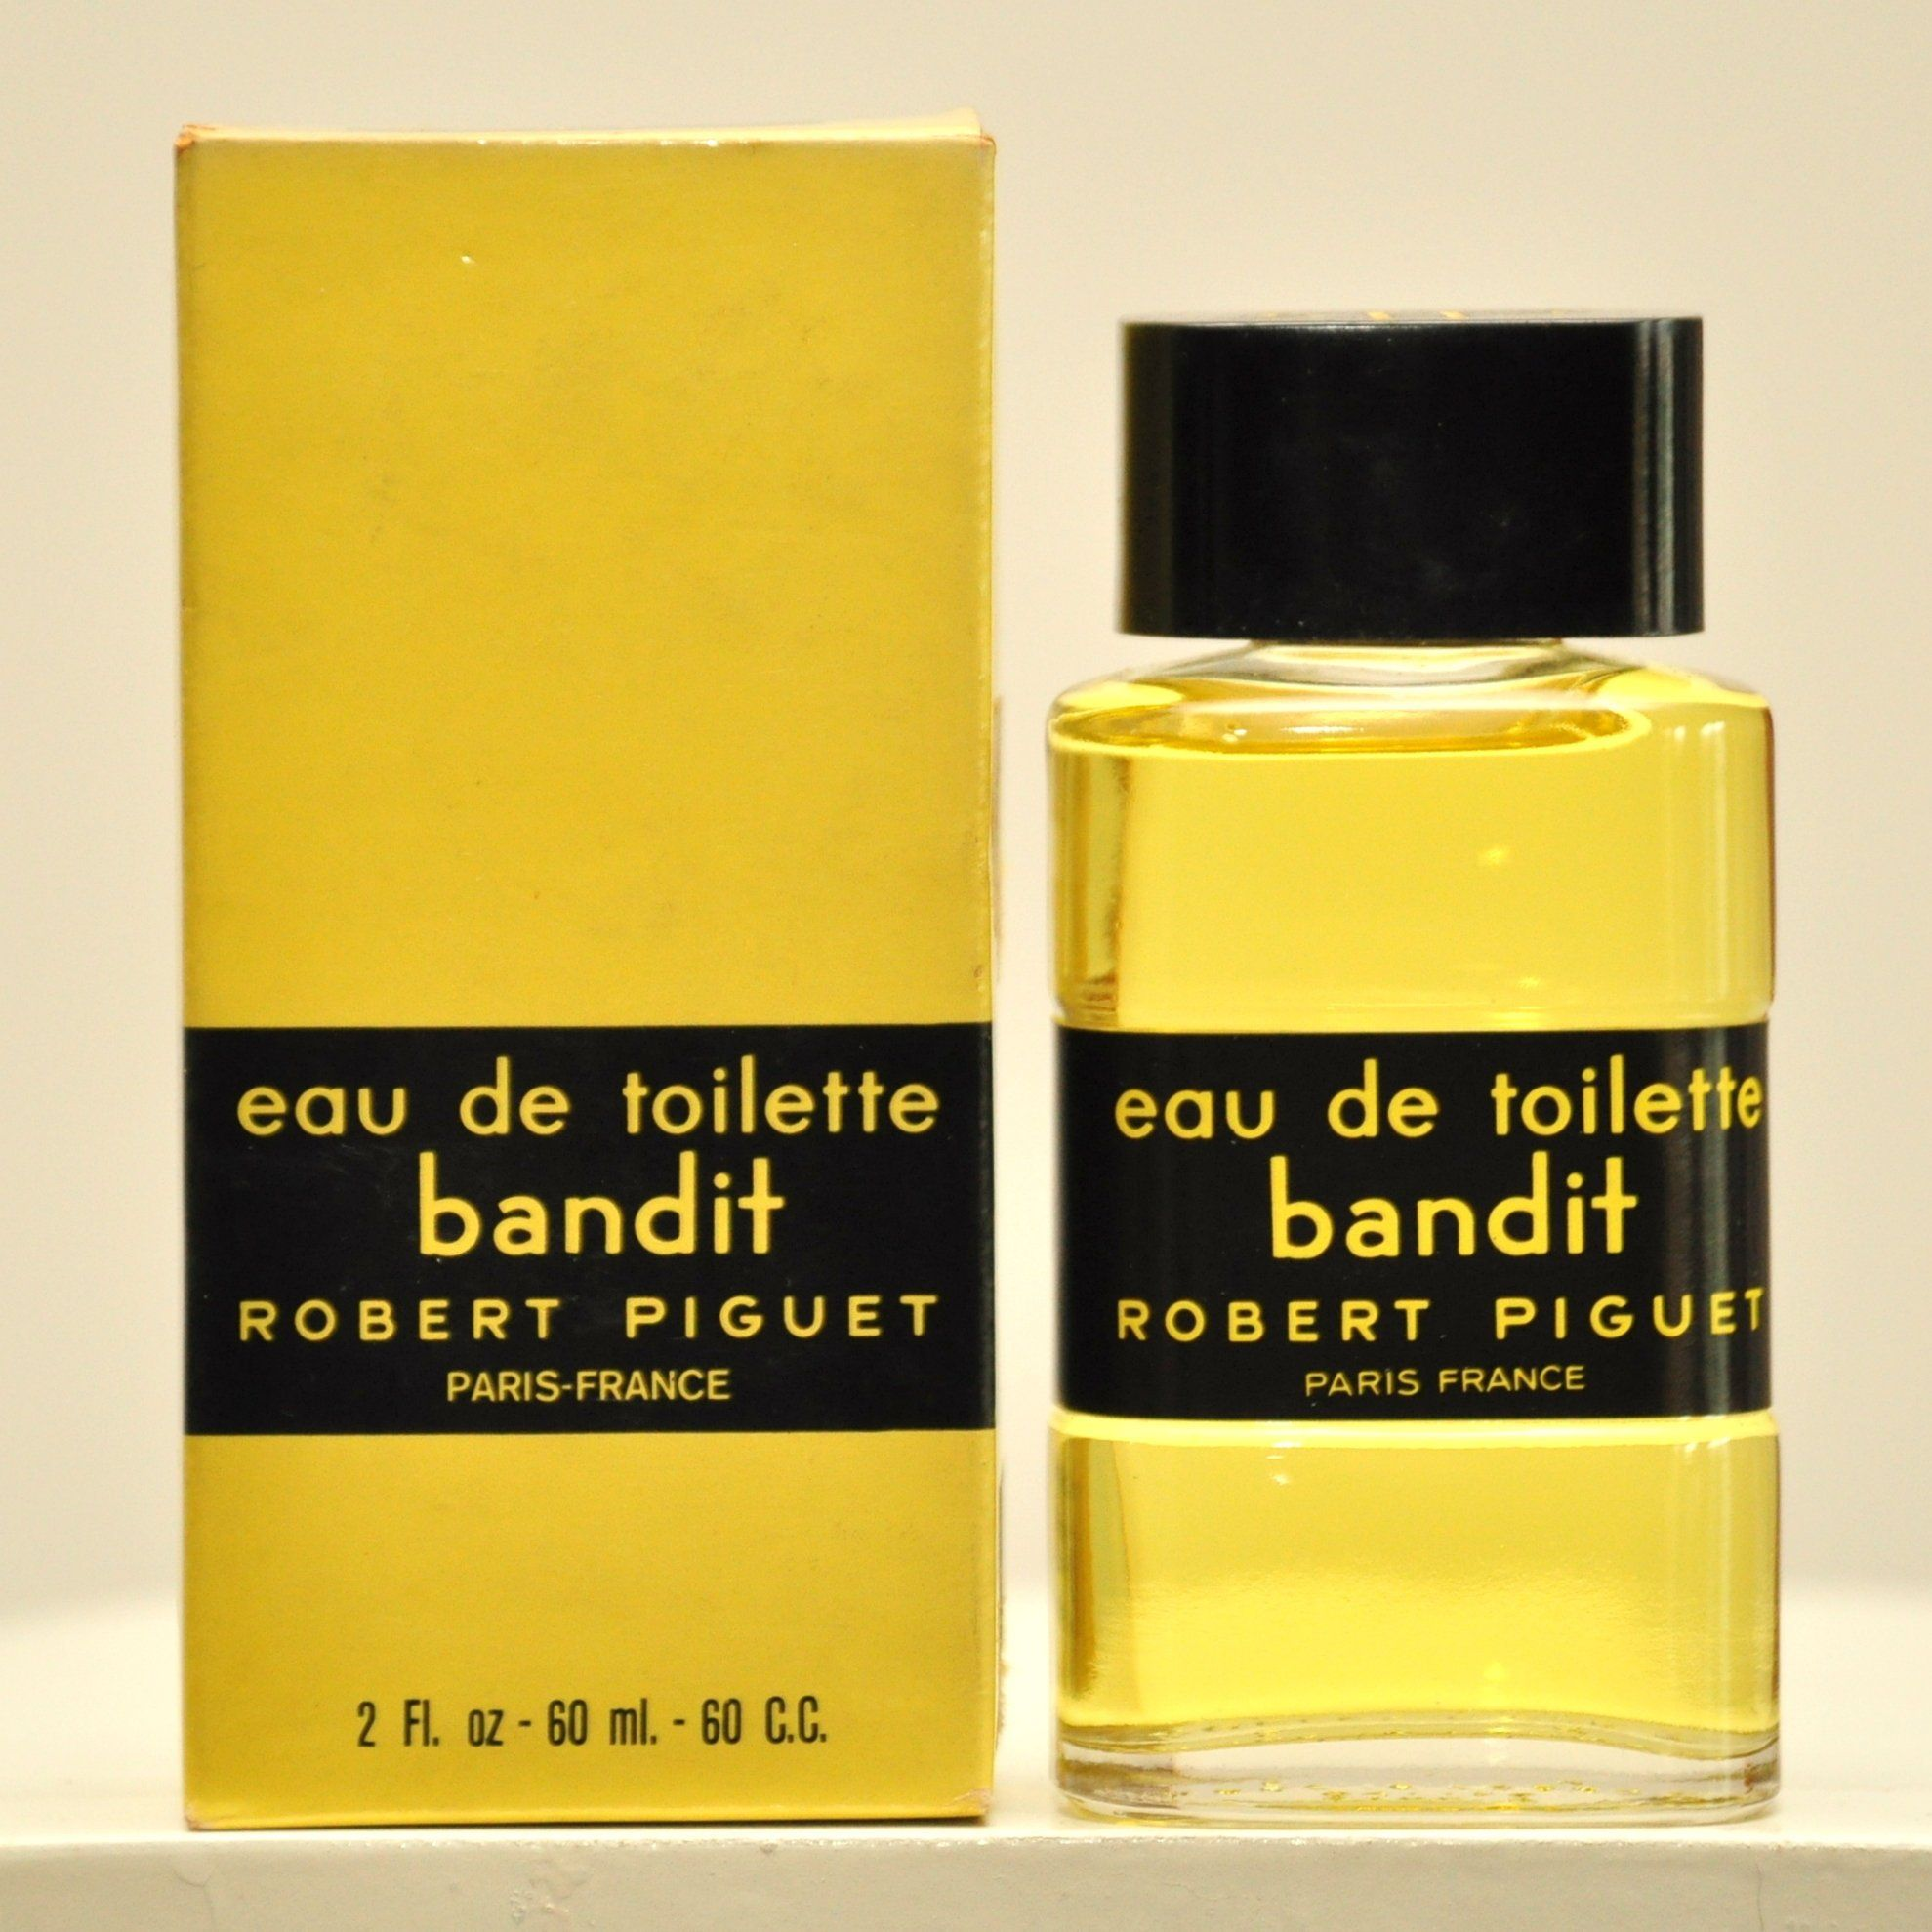 2bd8614bff838 Robert Piguet Bandit Eau de Toilette Edt 60ml 2 Fl. Oz. Splash No ...